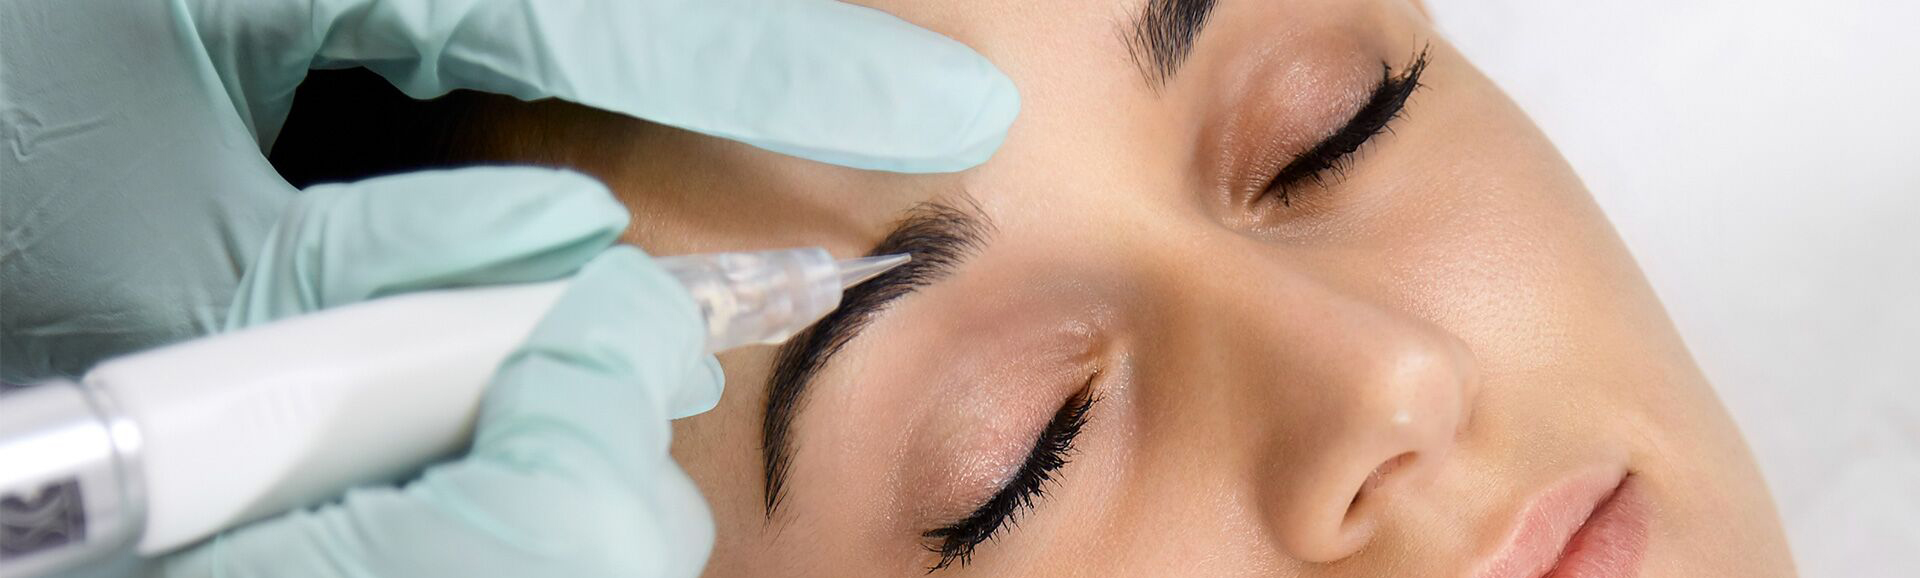 Permanente make up opleiding - Ombrebrow